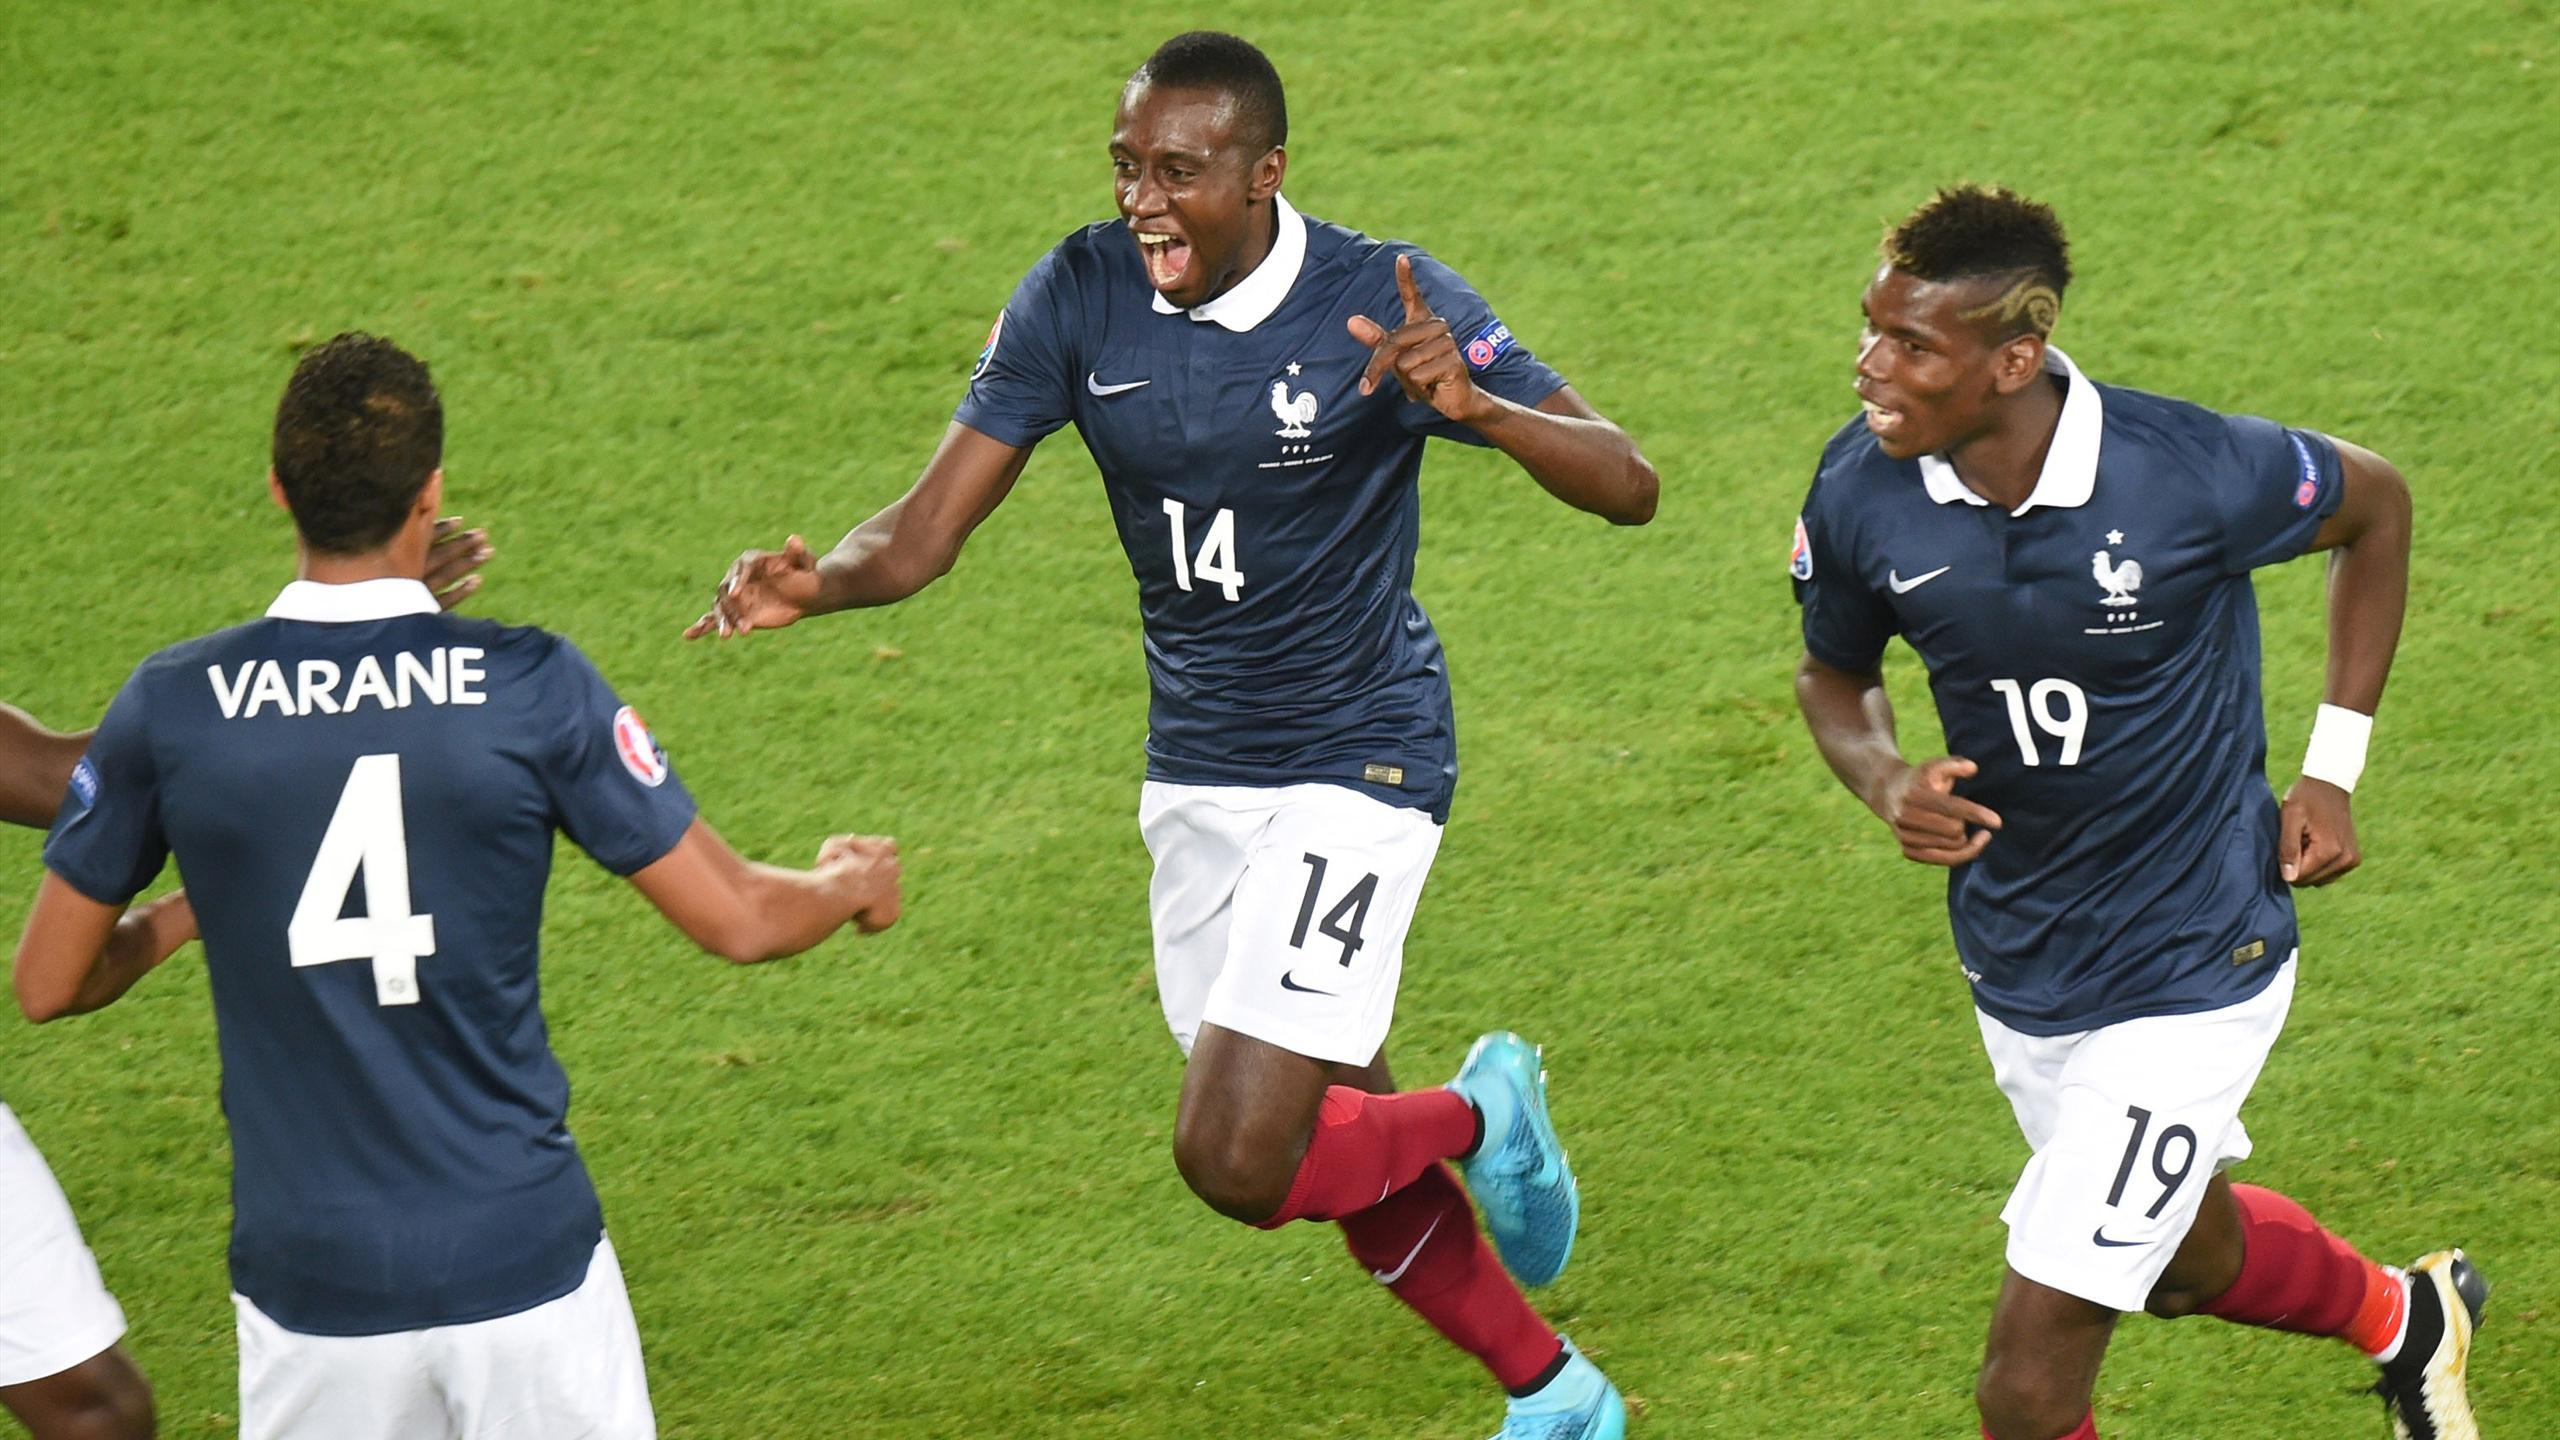 Blaise Matuidi après son 2e but lors de France - Serbie en match amical